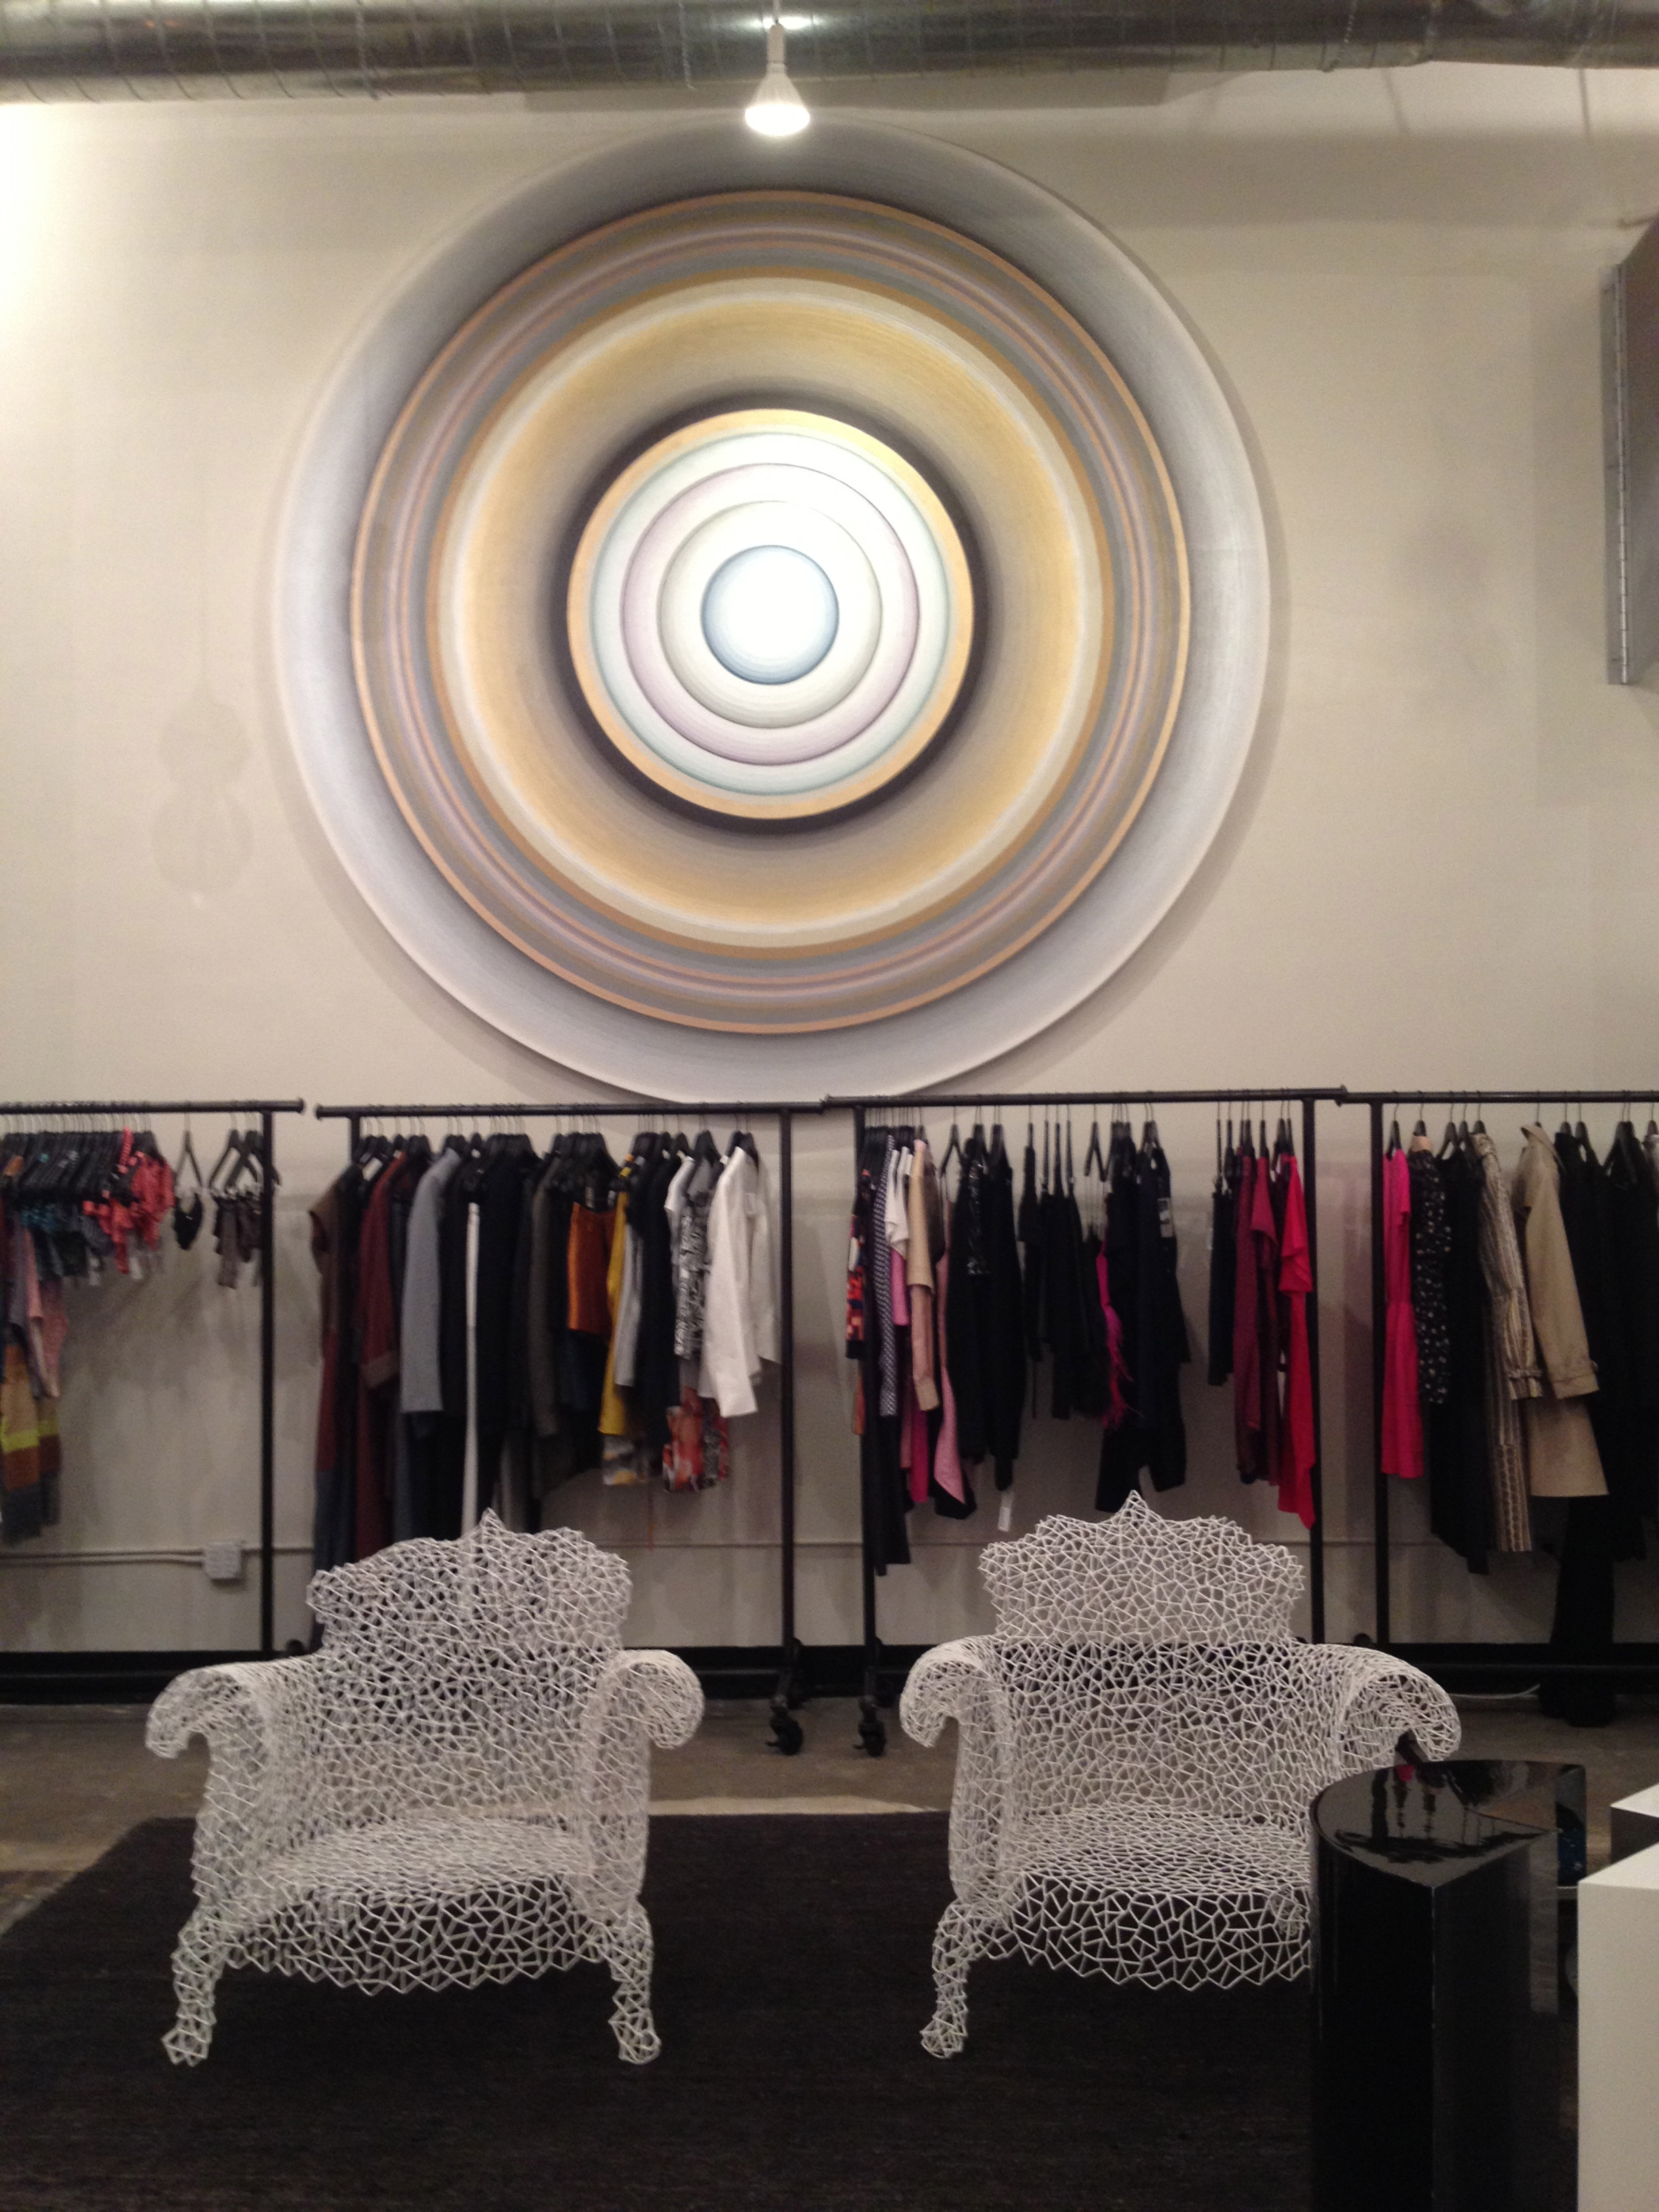 Inside the boutique!